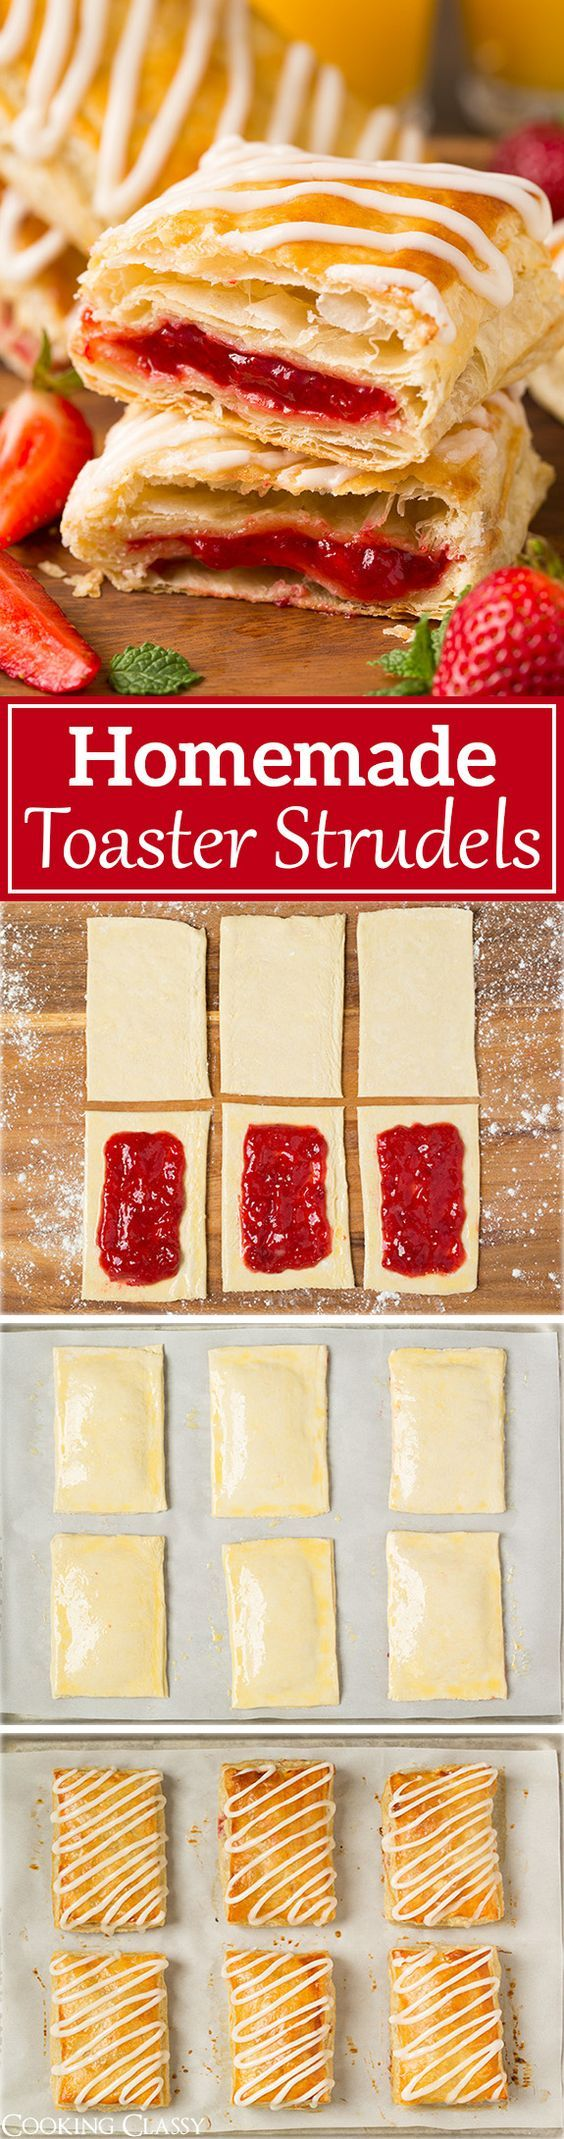 Homemade Toaster Strudels | Taste&Enjoy